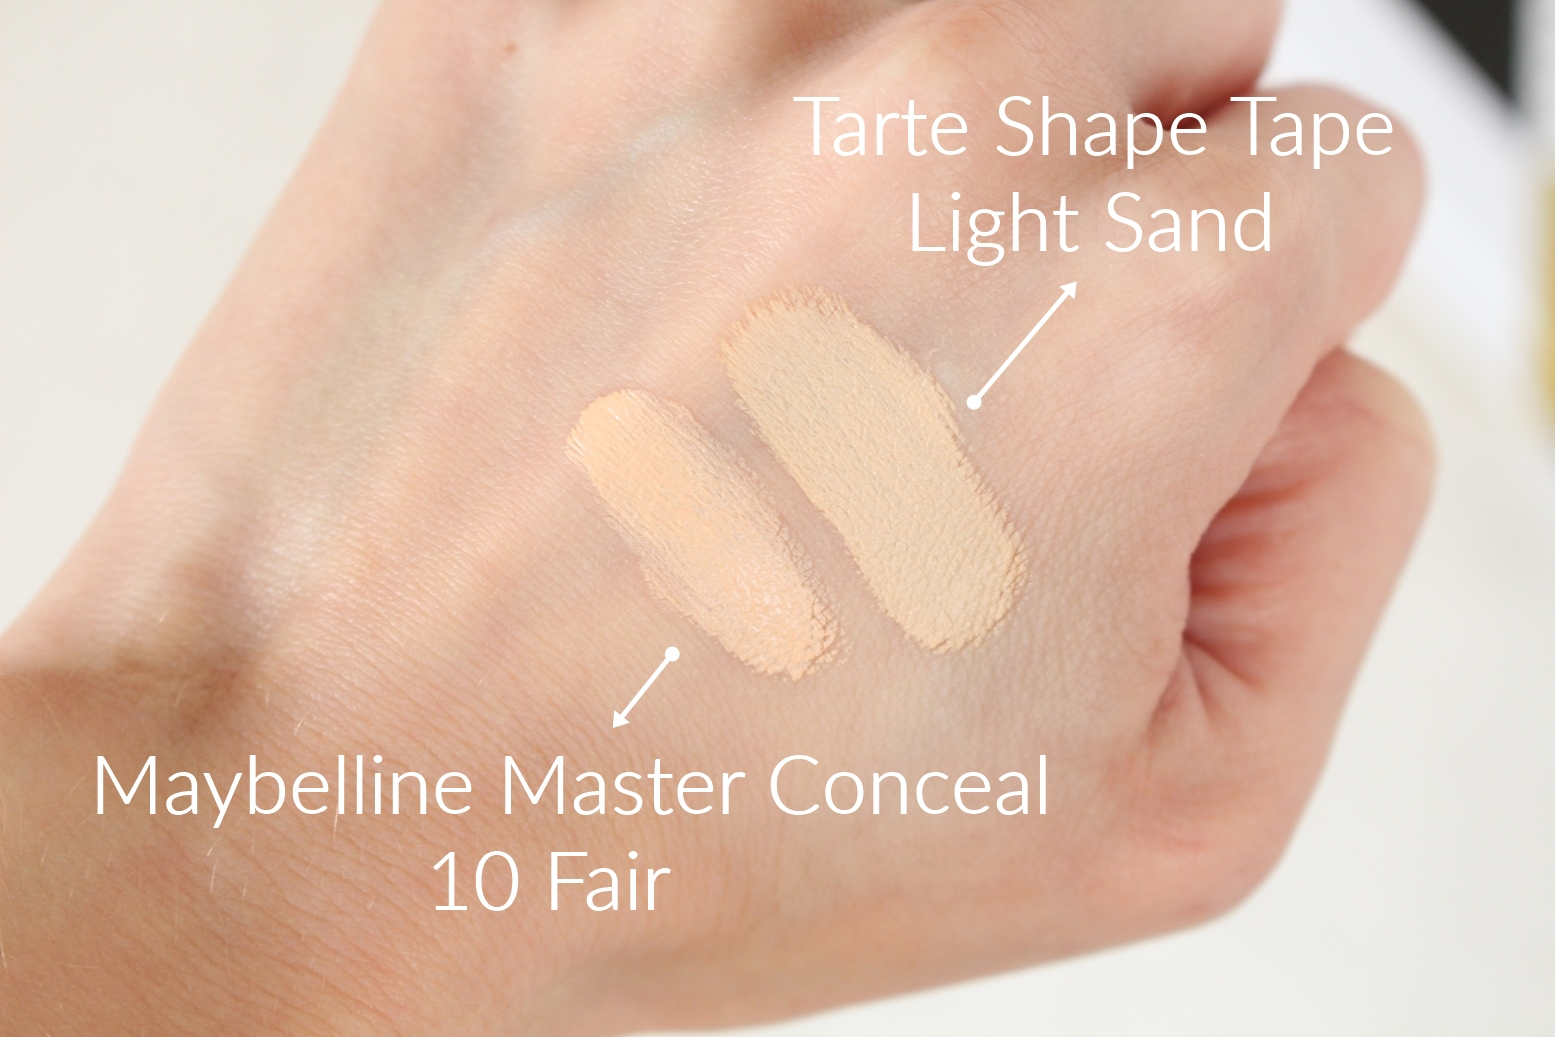 tarte-shape-tape-maybelline-maste-conceal-swatch